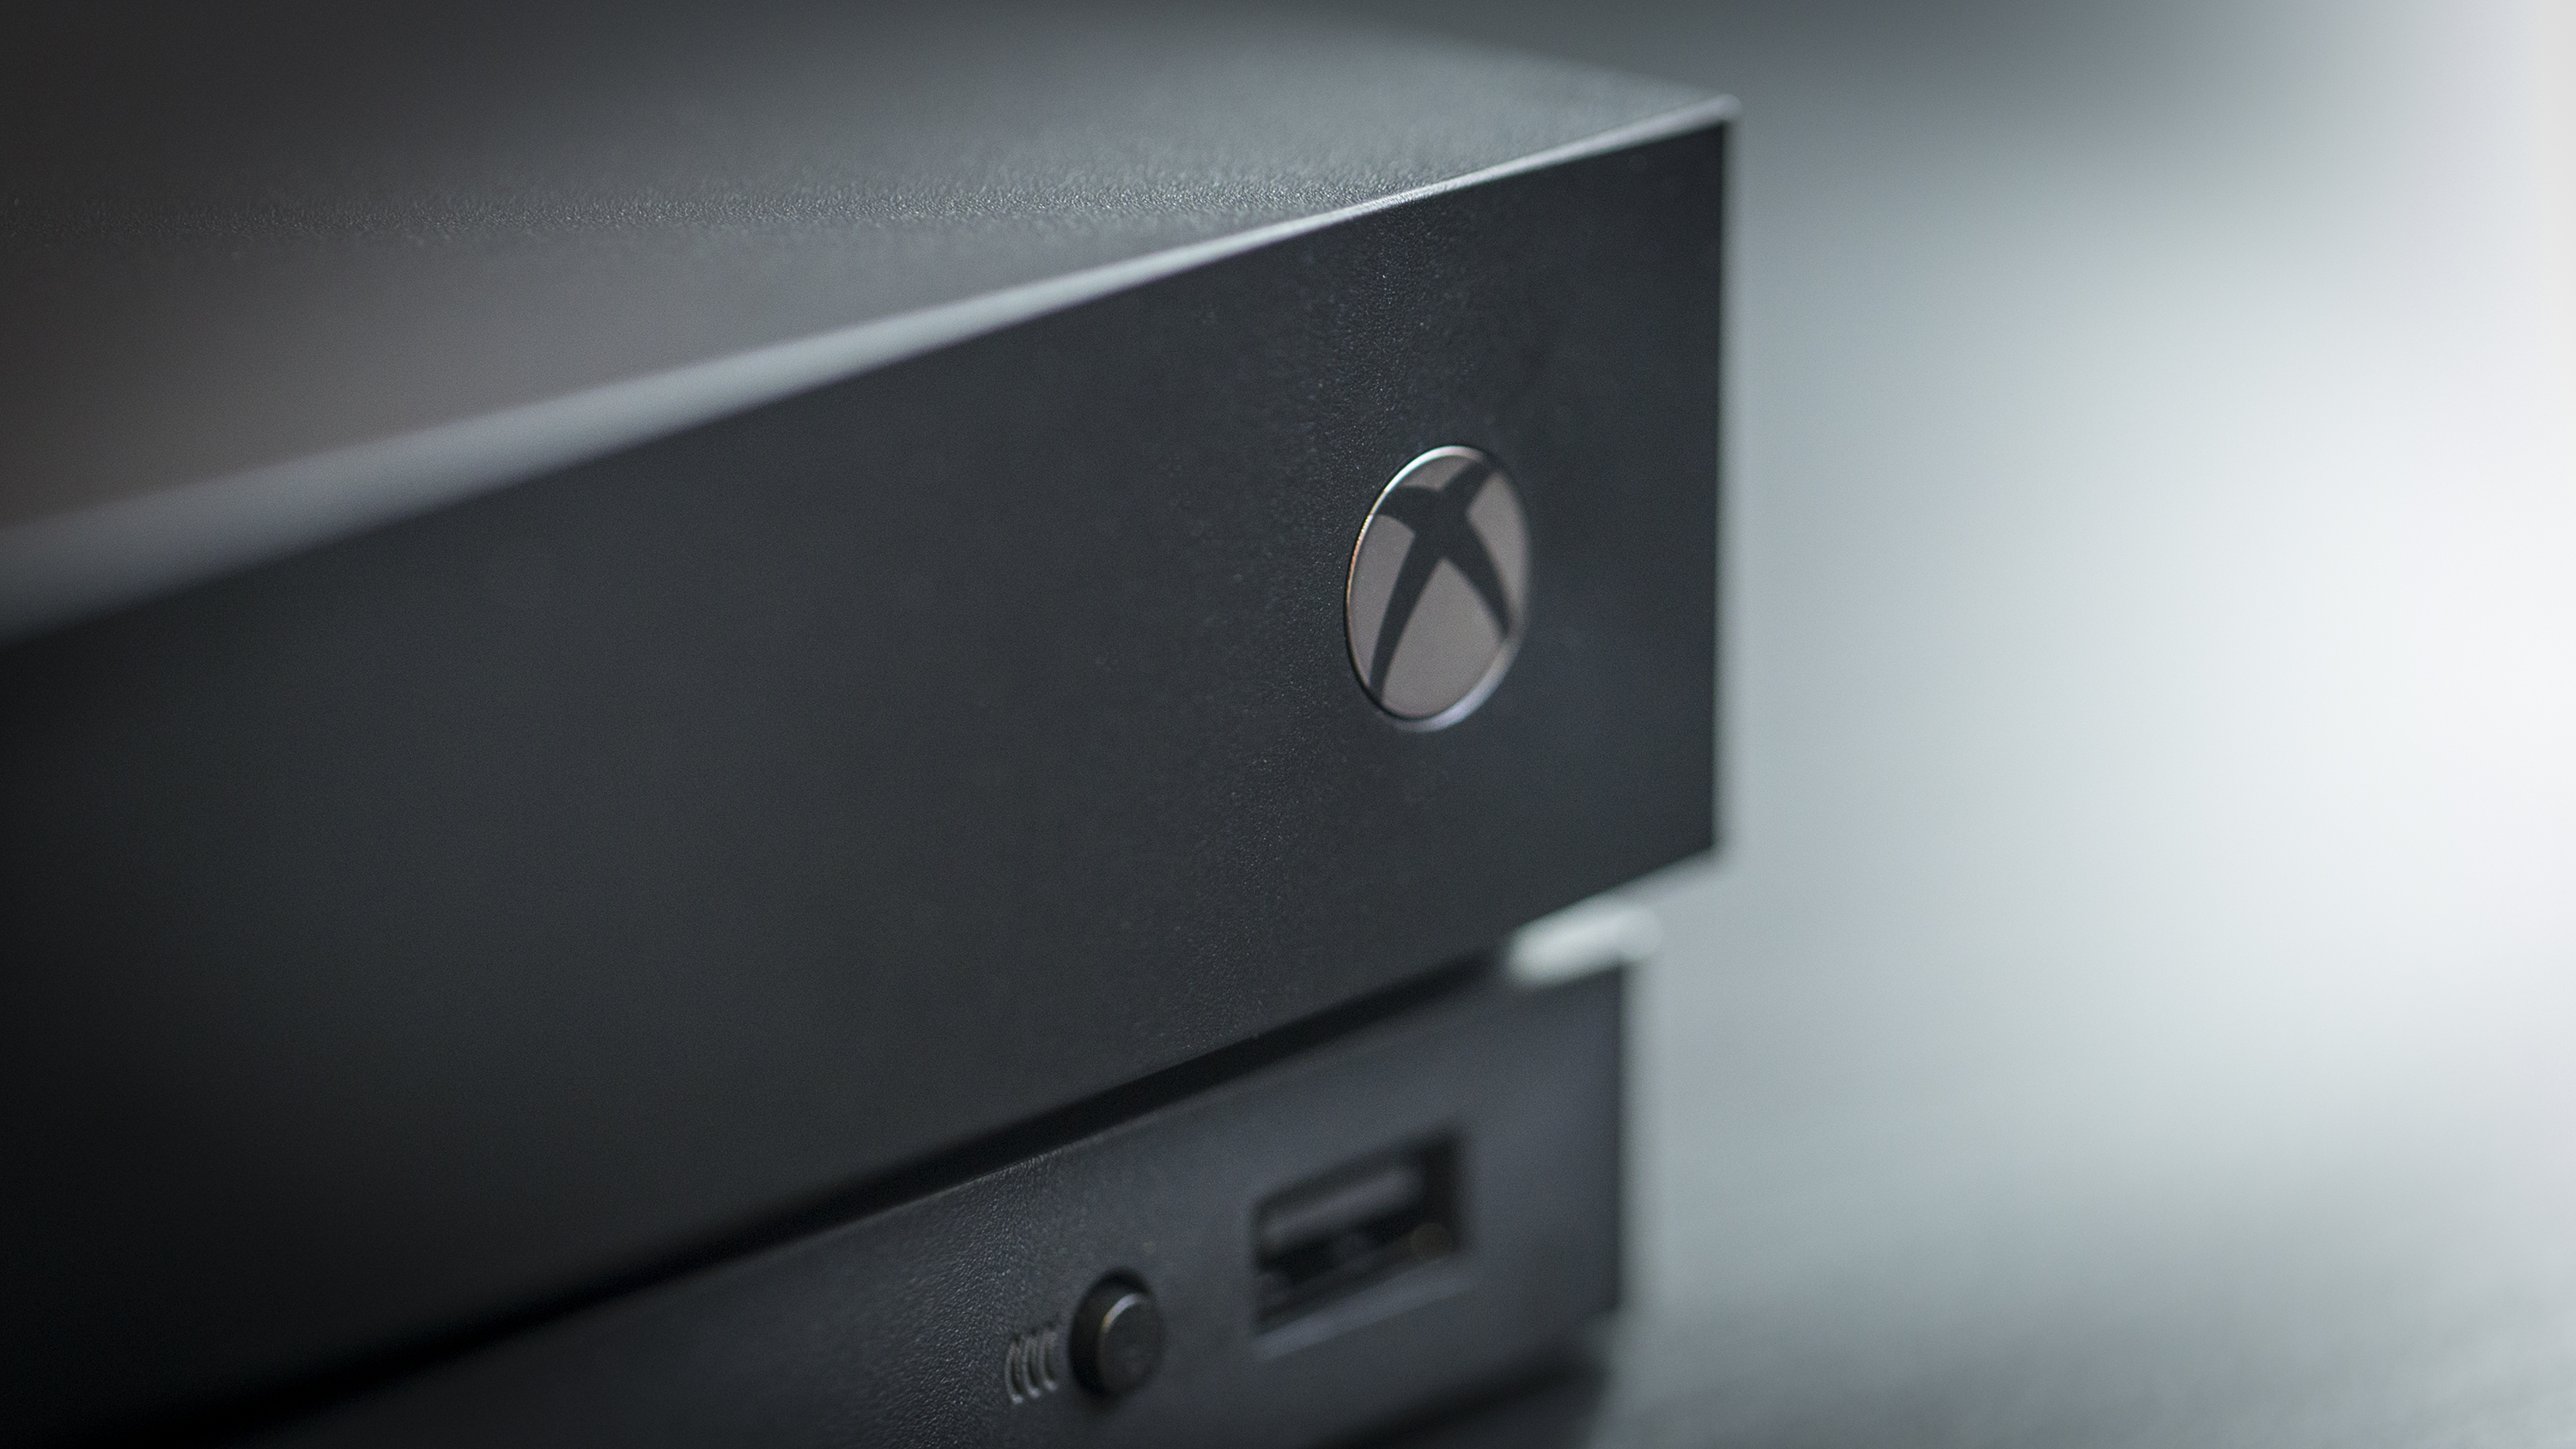 Another new Xbox console, and abe3p62idqwupWZ3FsUT